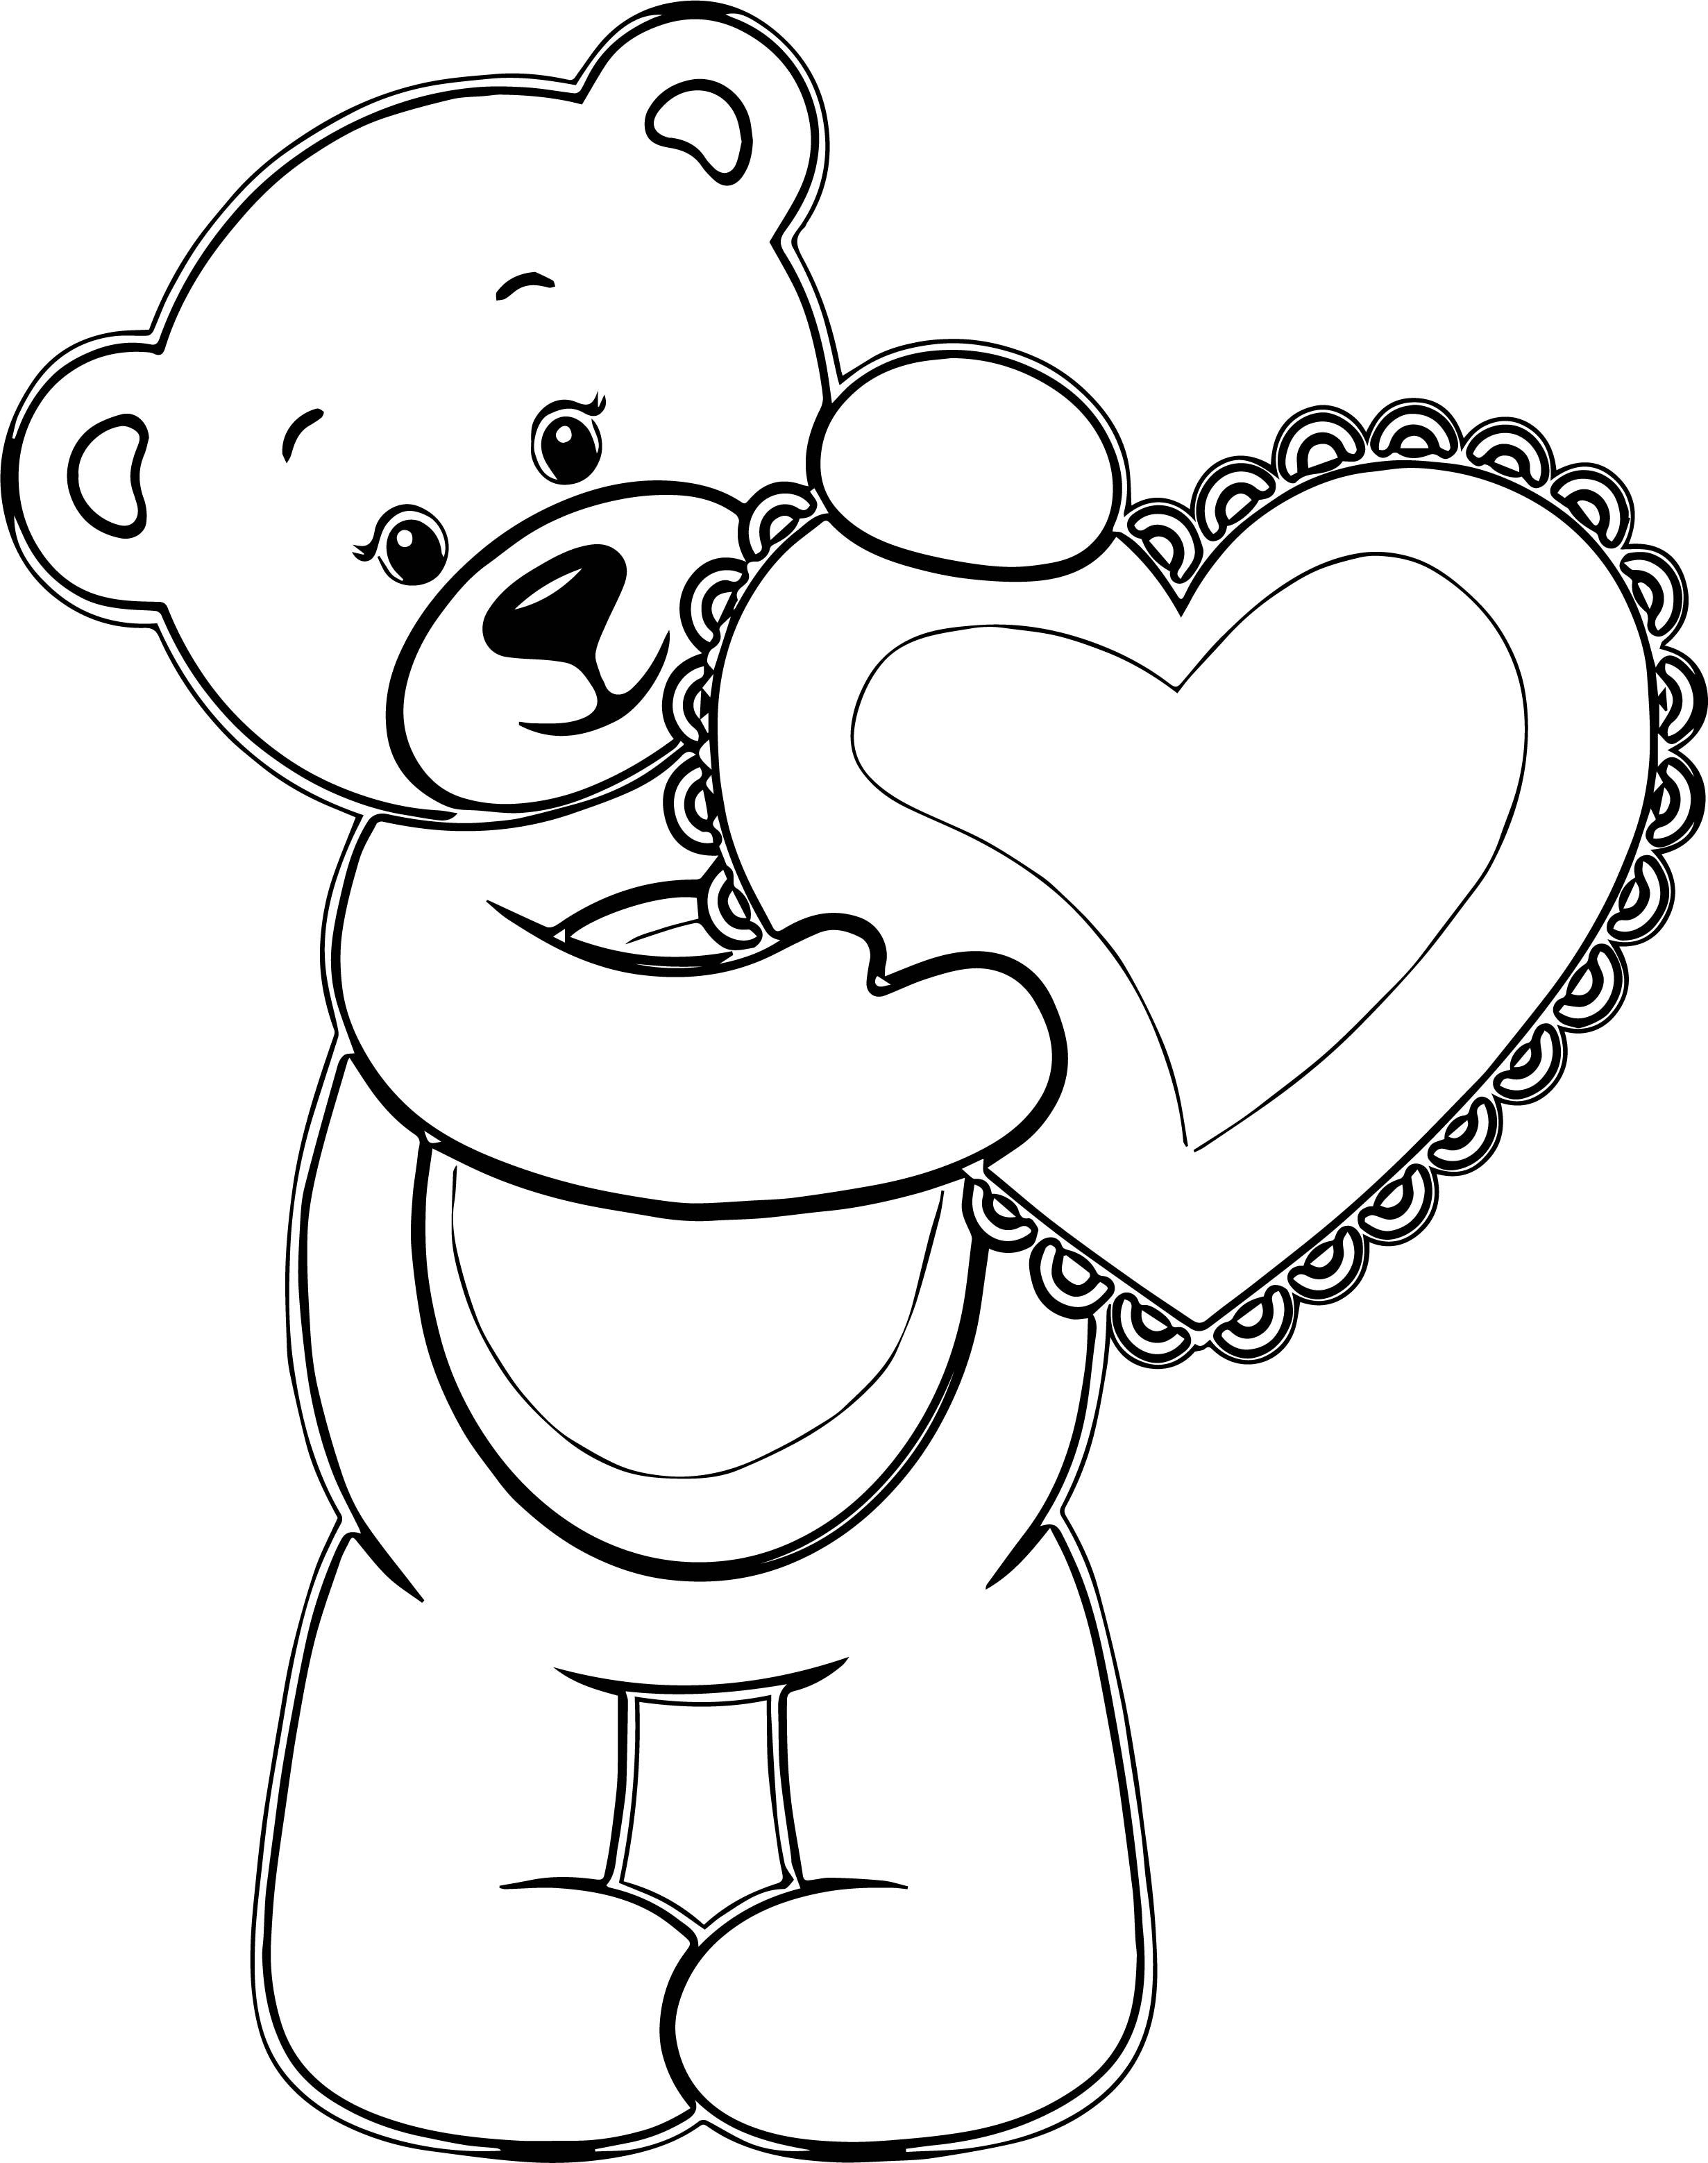 Awesome Girl Bear Heart Coloring Page Teddy Bear Coloring Pages Heart Coloring Pages Bear Coloring Pages